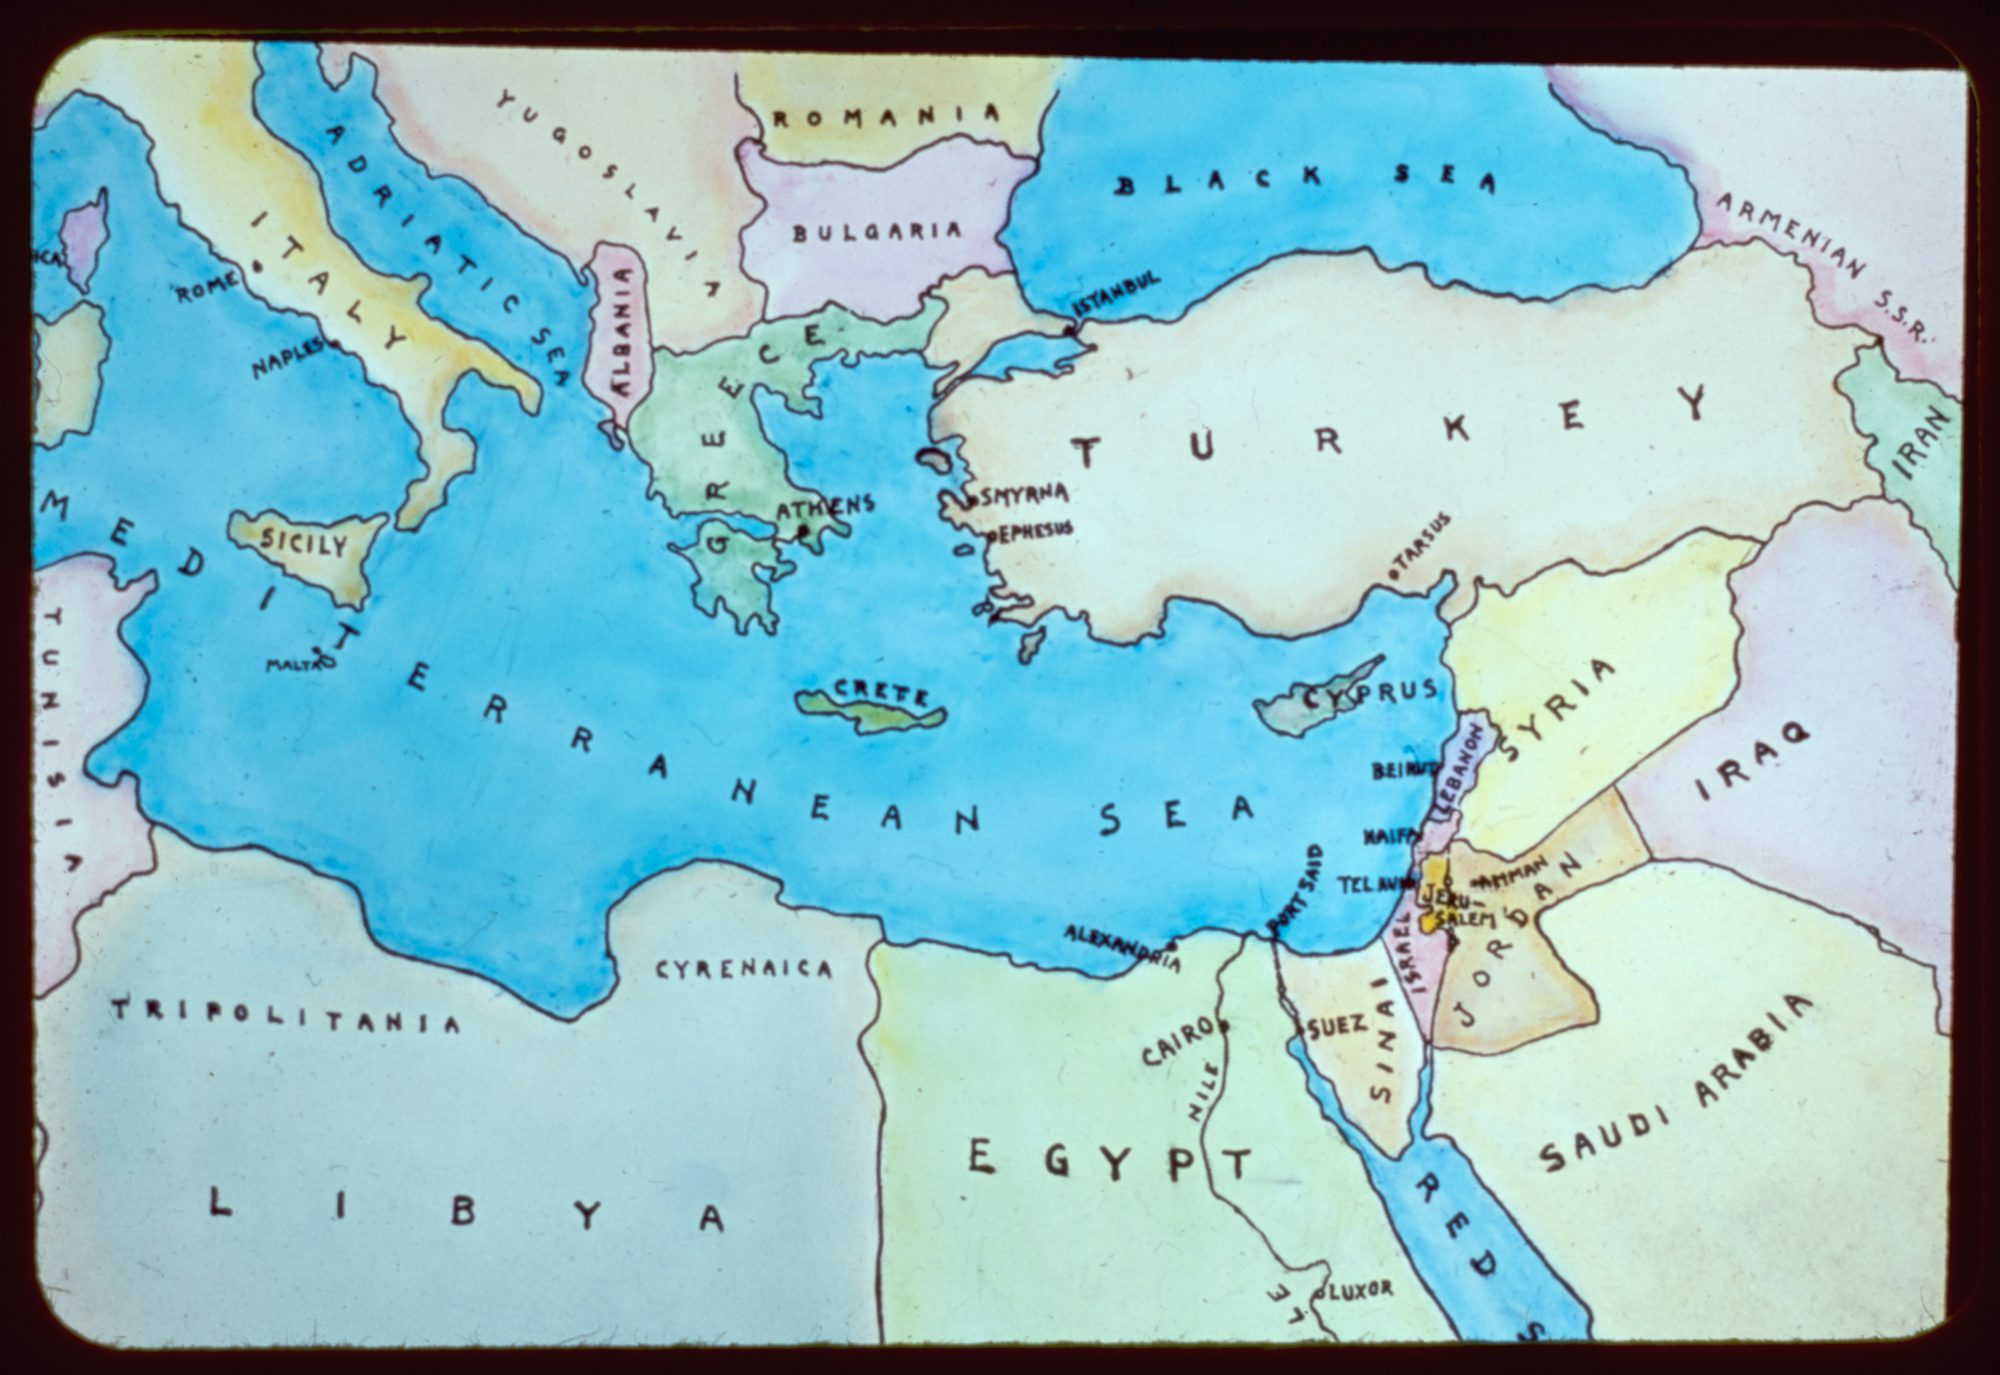 Map of the eastern Mediterranean and surrounding countries